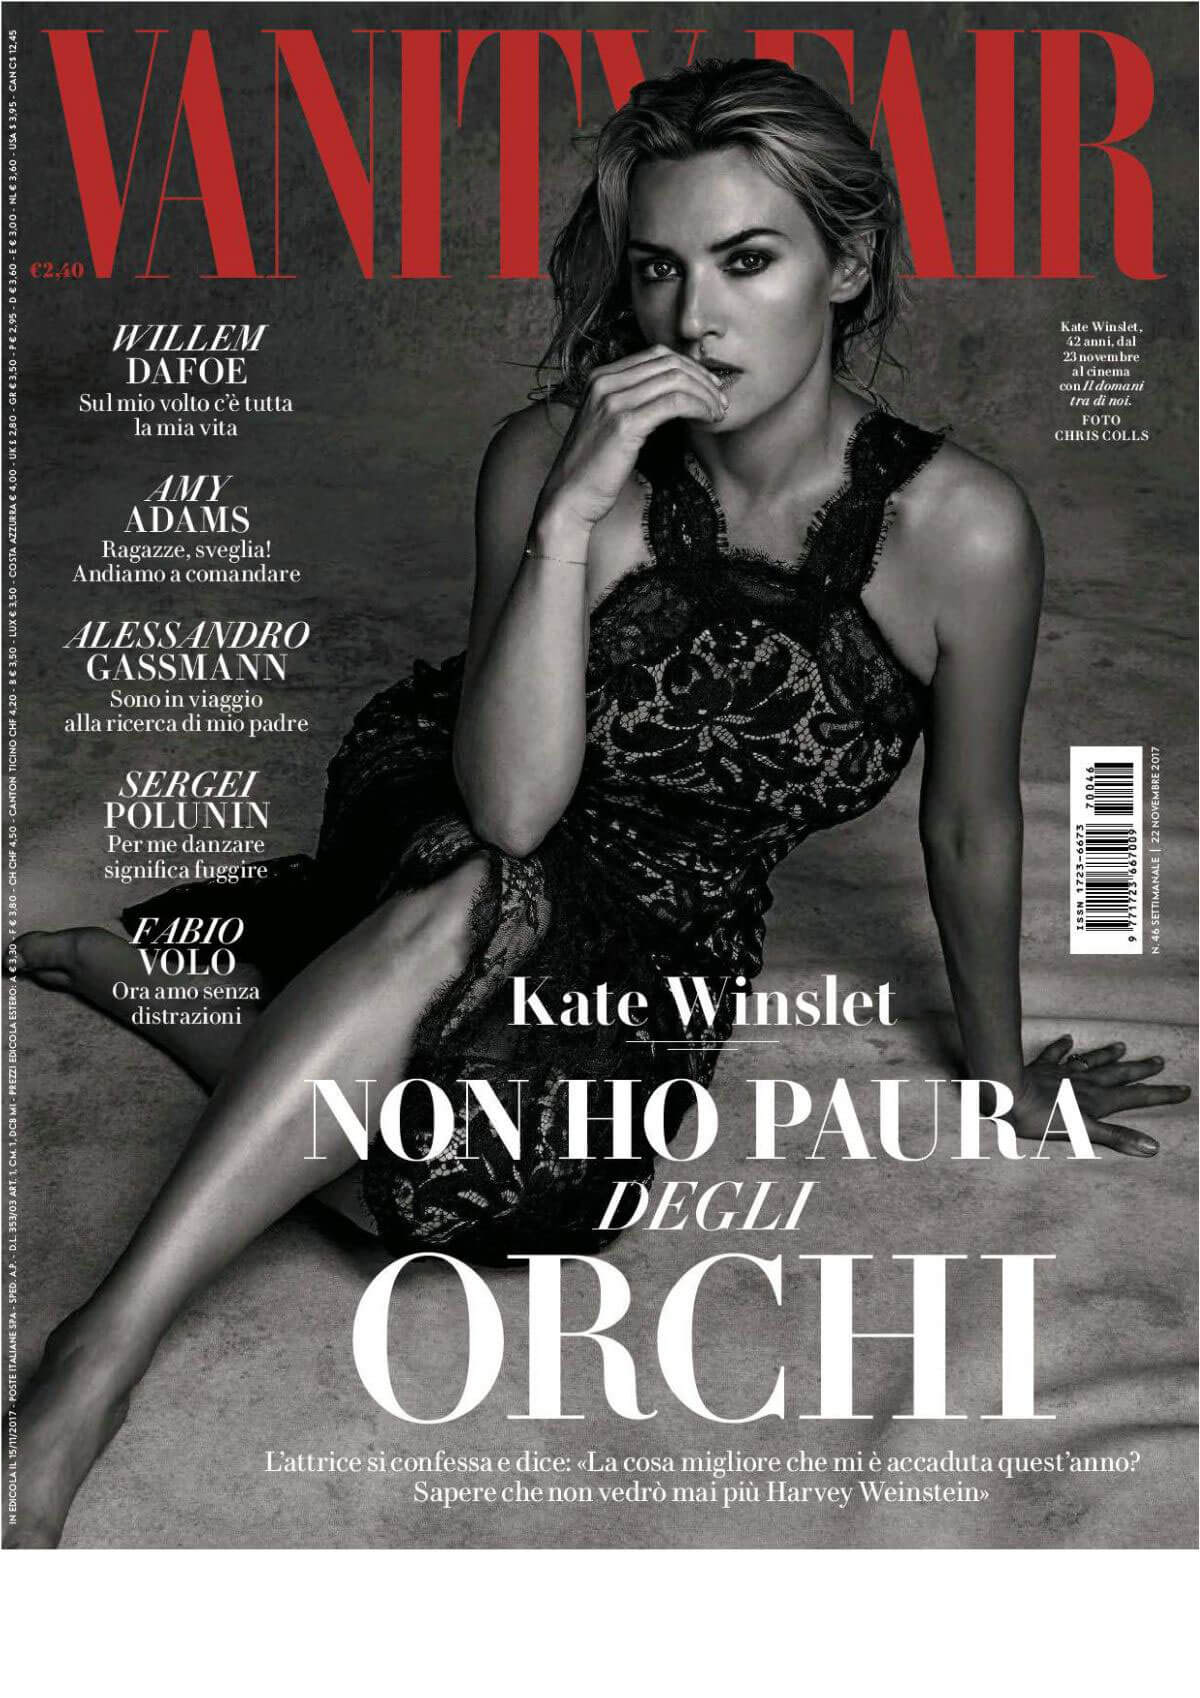 Kate Winslet Poses for Vanity Fair Magazine Italy November 2017 Issue